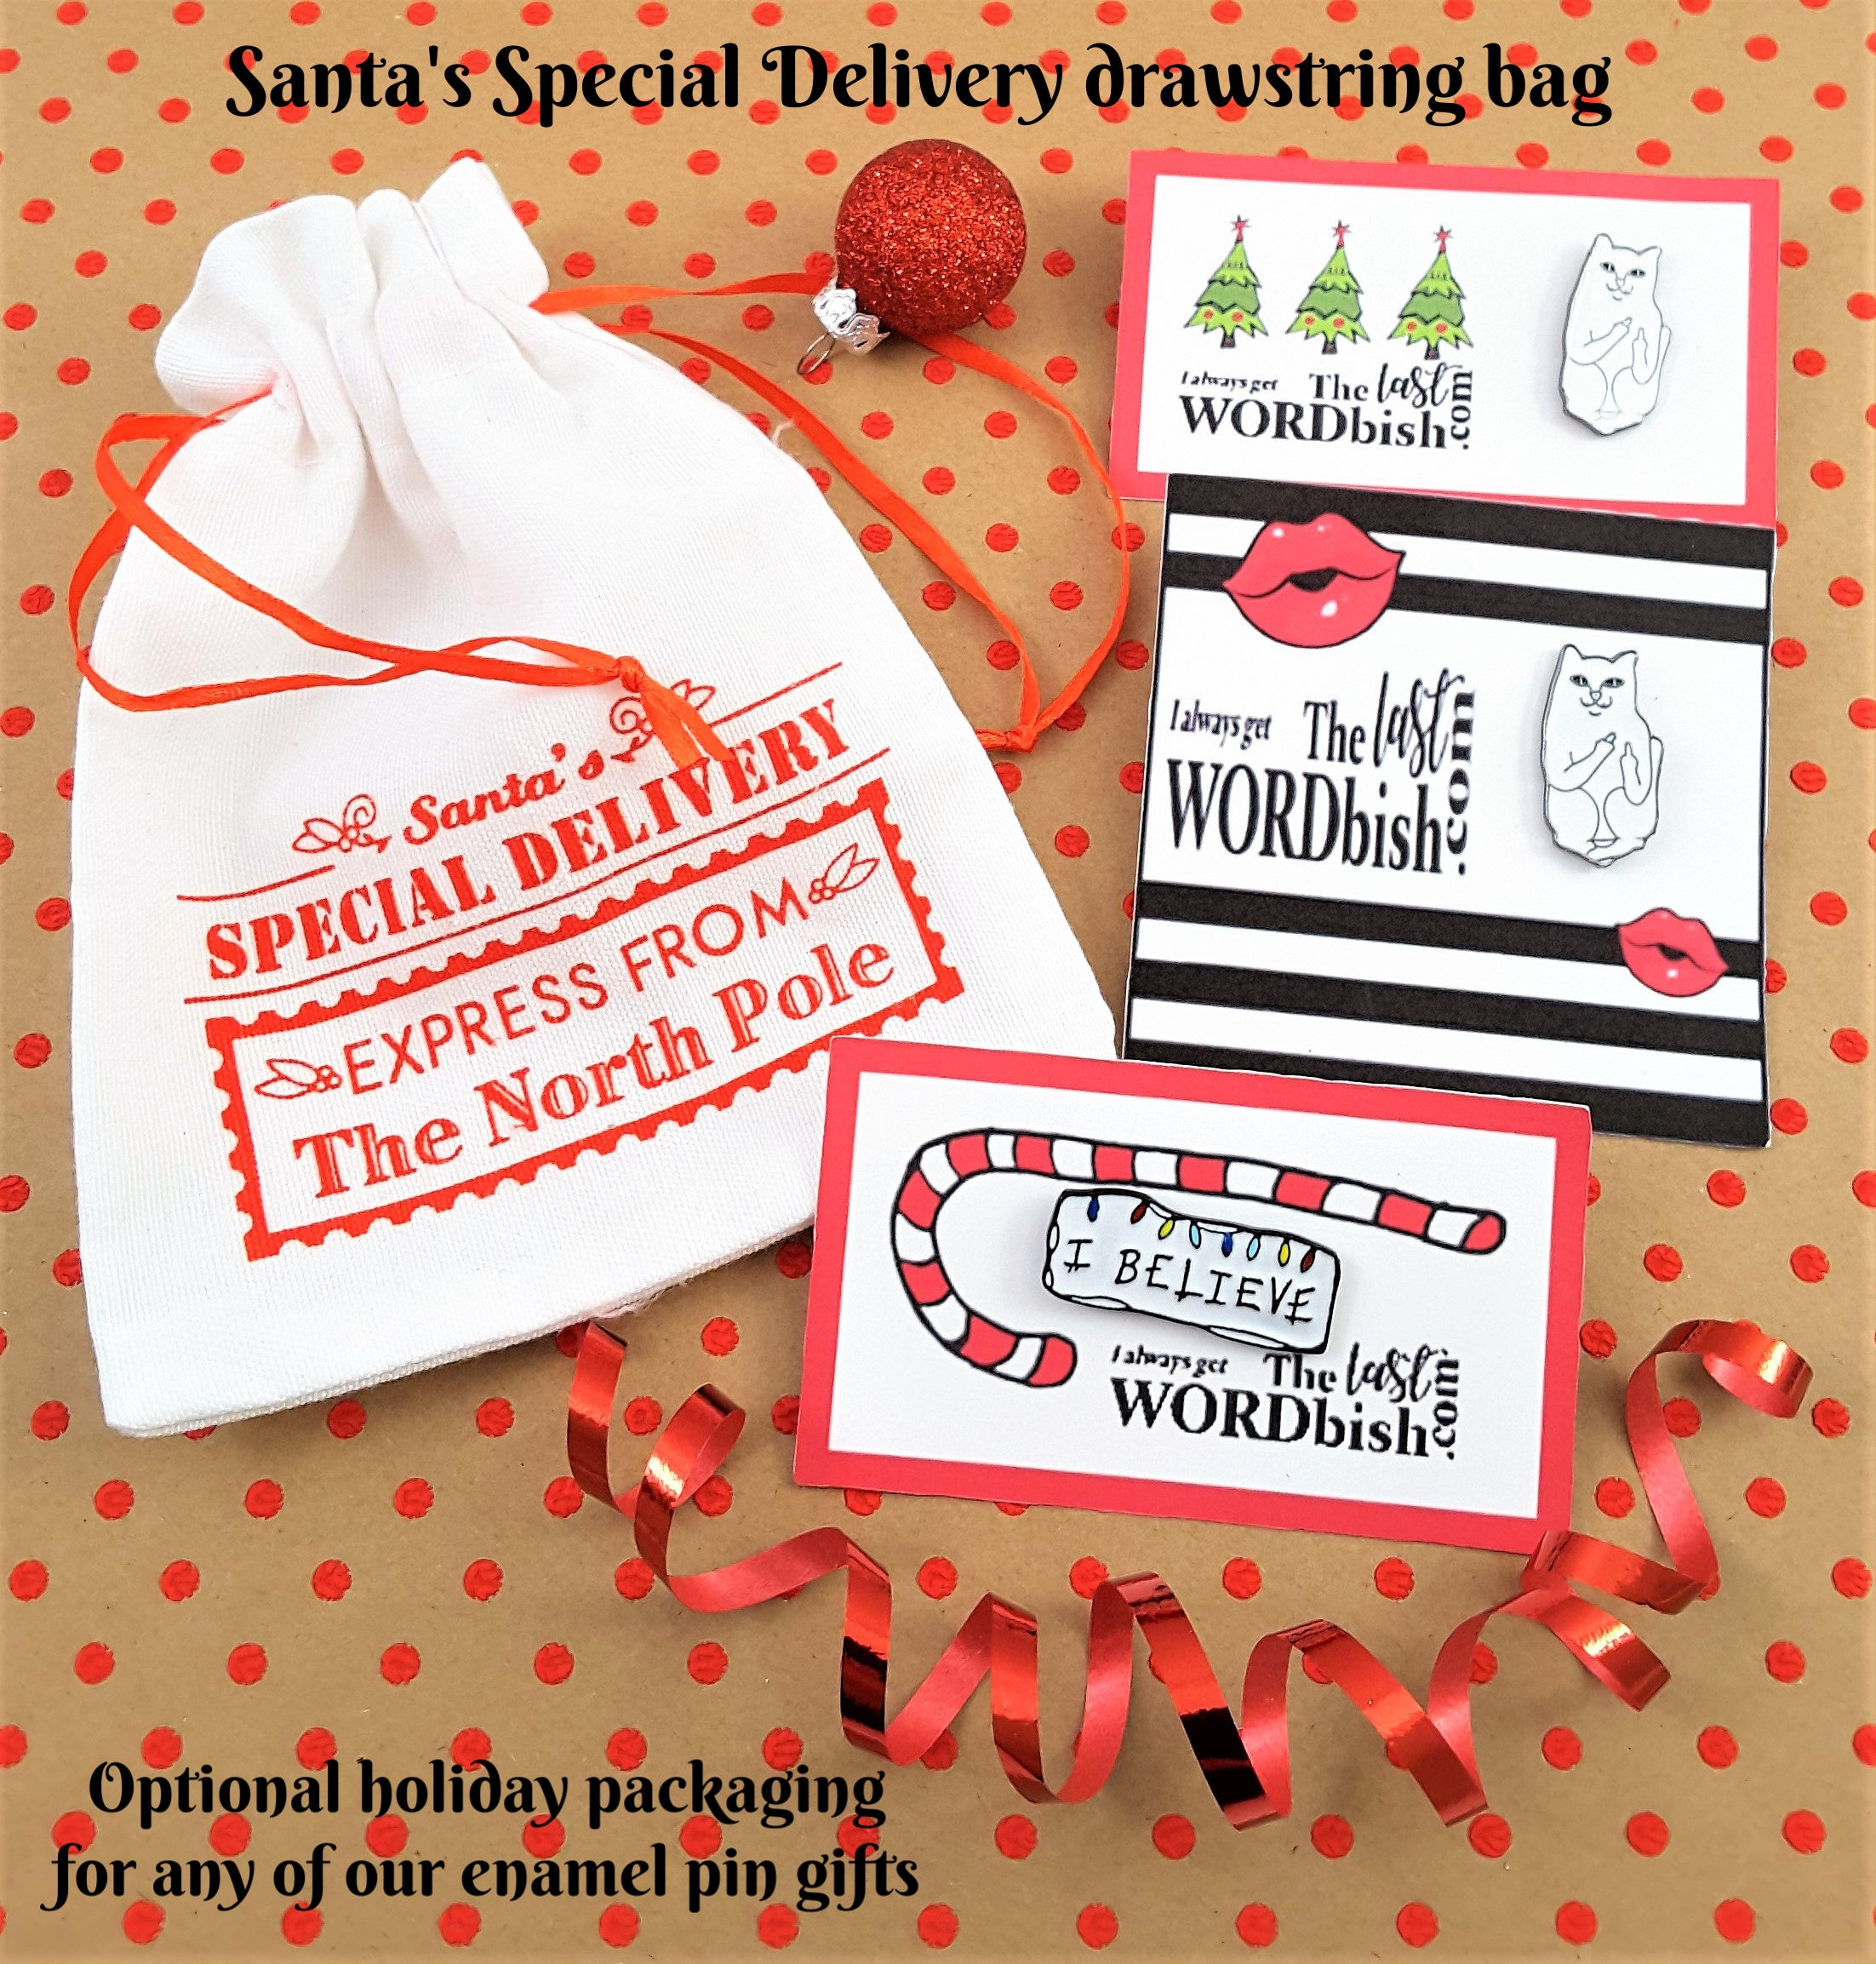 SANTA'S SPECIAL DELIVERY DRAWSTRING BAG FOR ENAMEL PINS